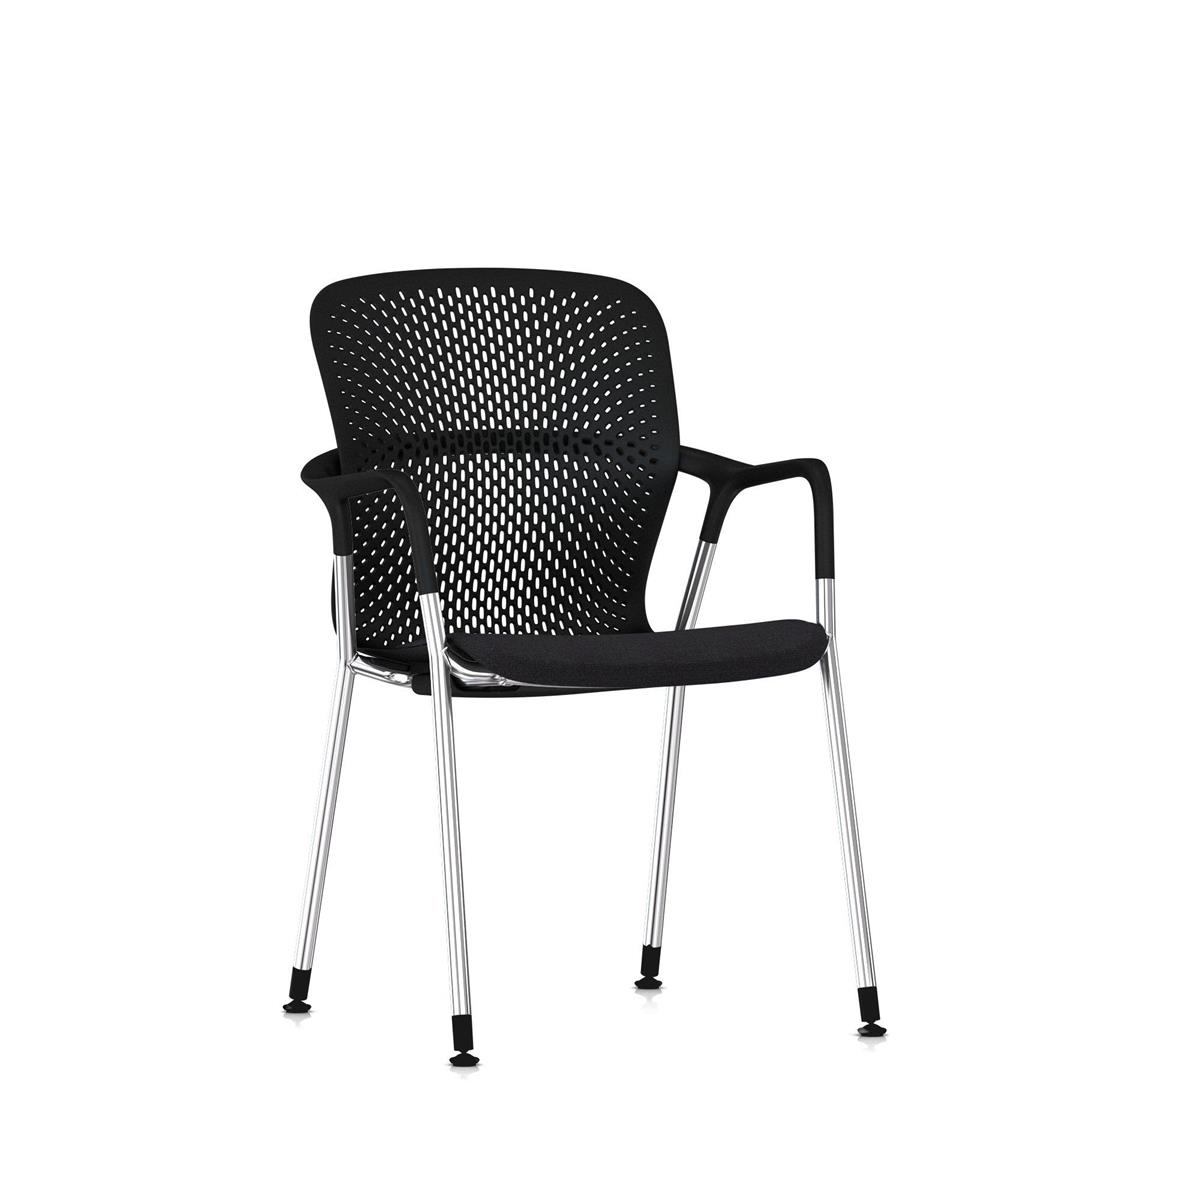 Keyn 4 Leg Armchair Chrome & Black - Camira Sprint tekstil og glidere